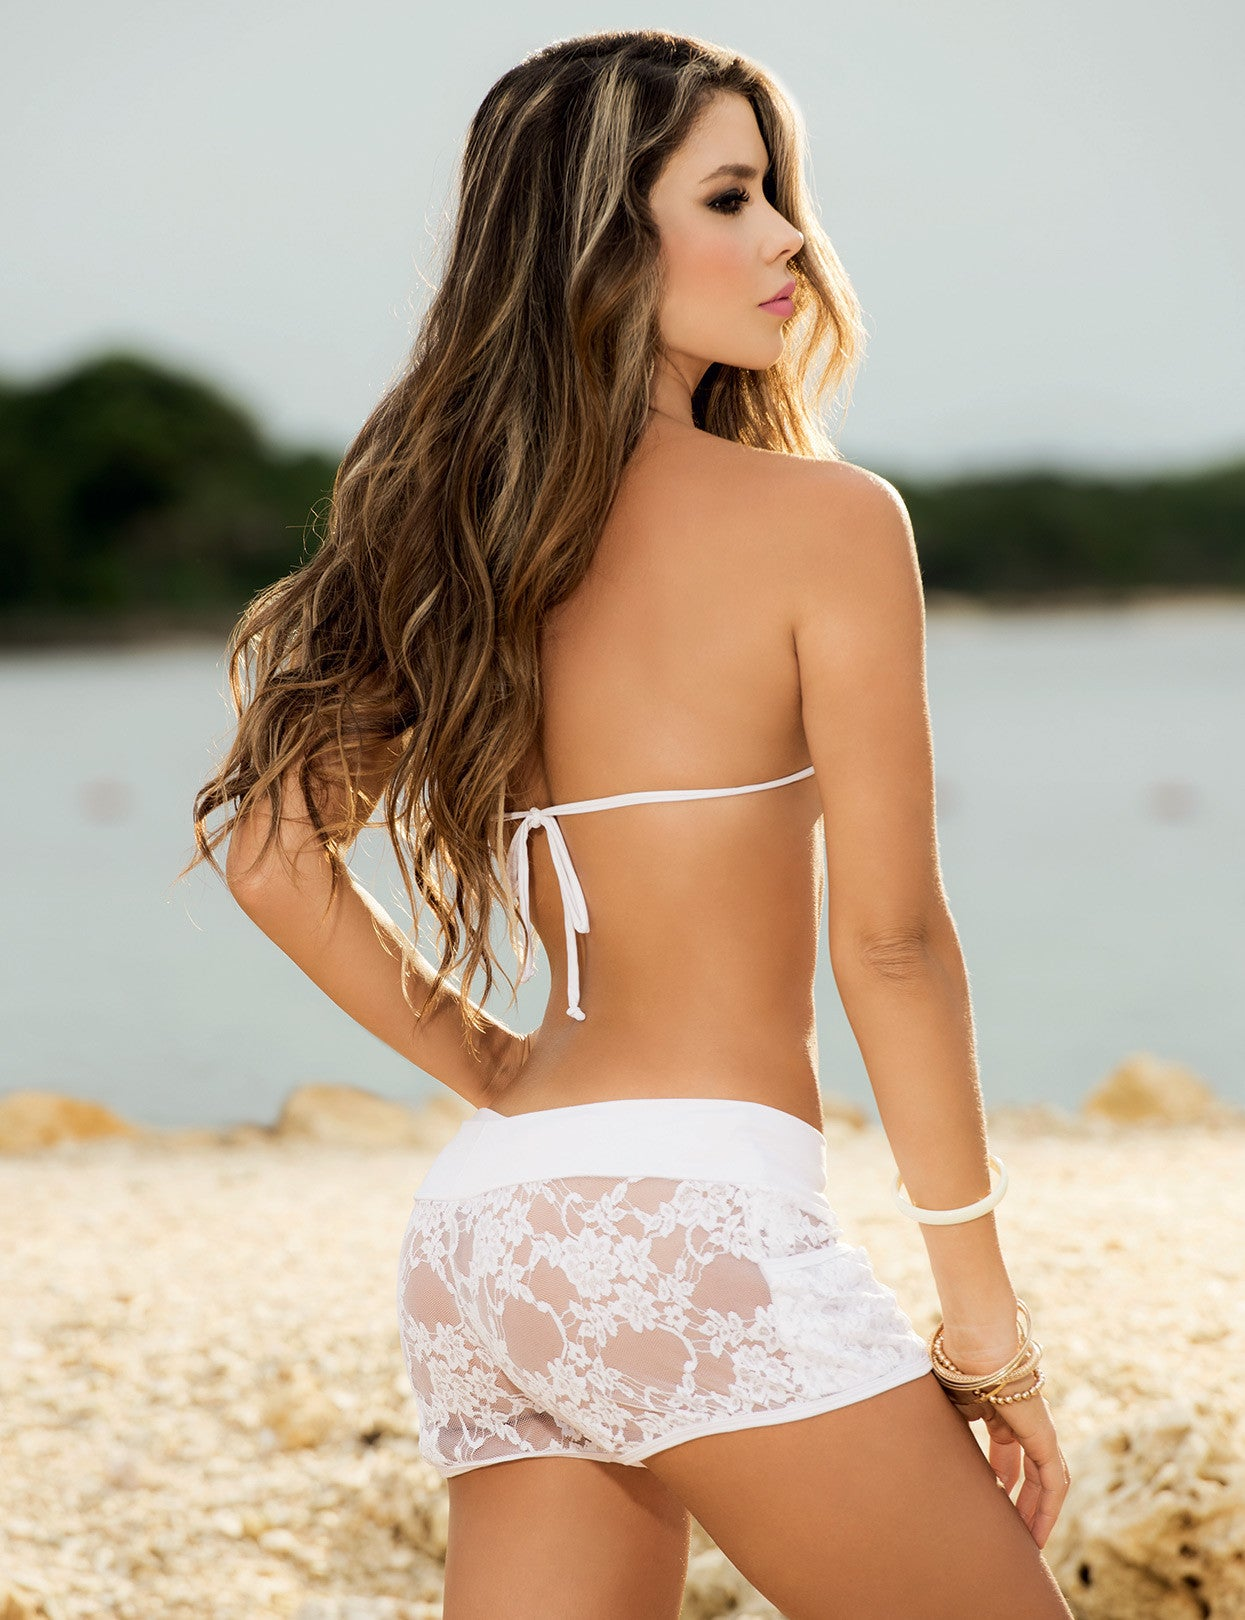 hot short shorts pictures